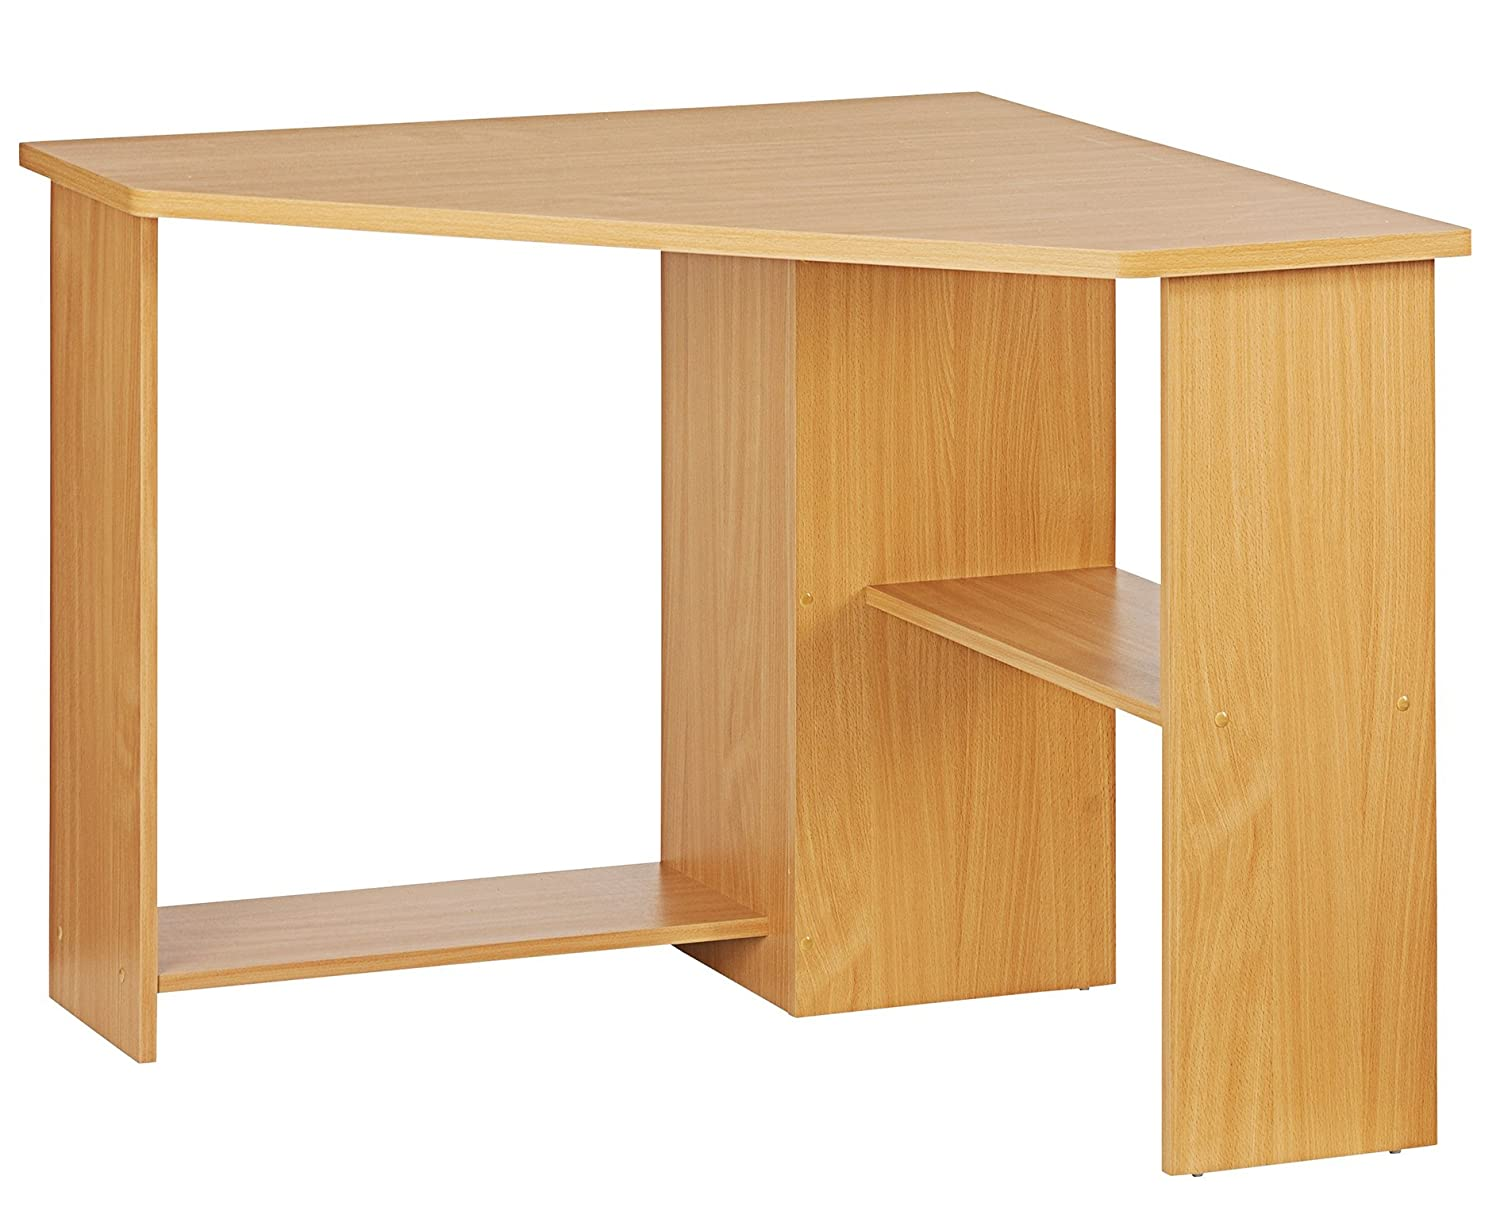 office corner desks. Function Home Office Corner Desk - Color: Beech Effect: Amazon.co.uk: Products Desks